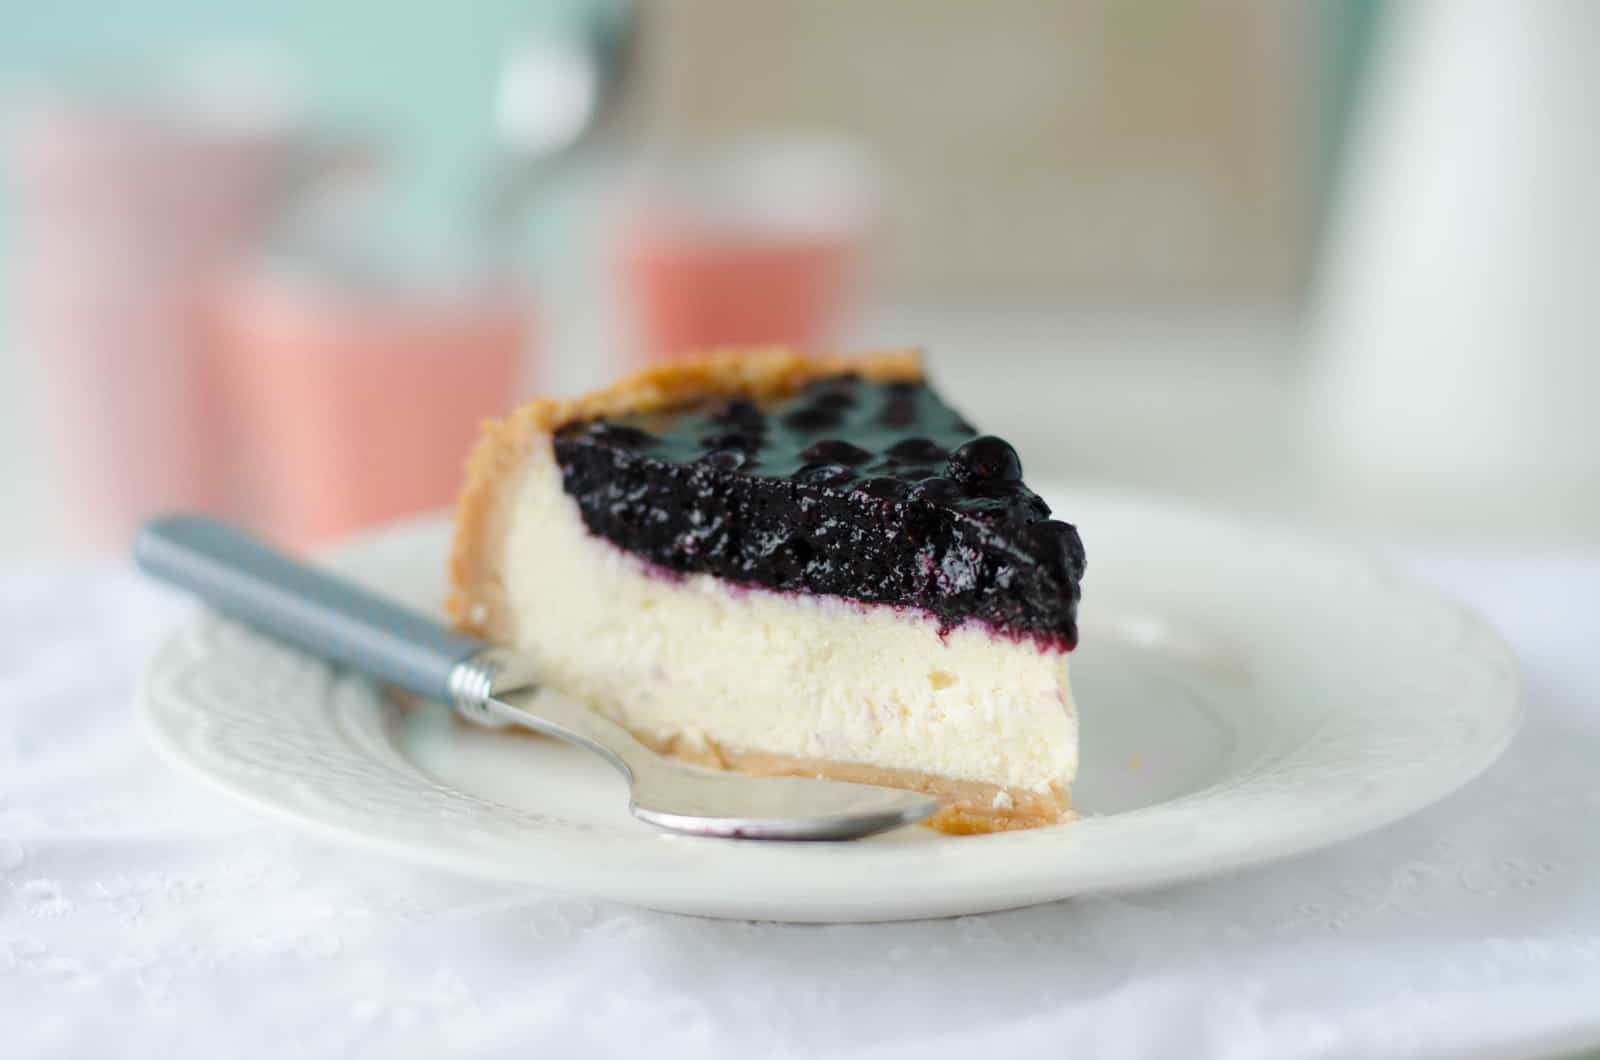 Cheesecake aux myrtilles sauvages